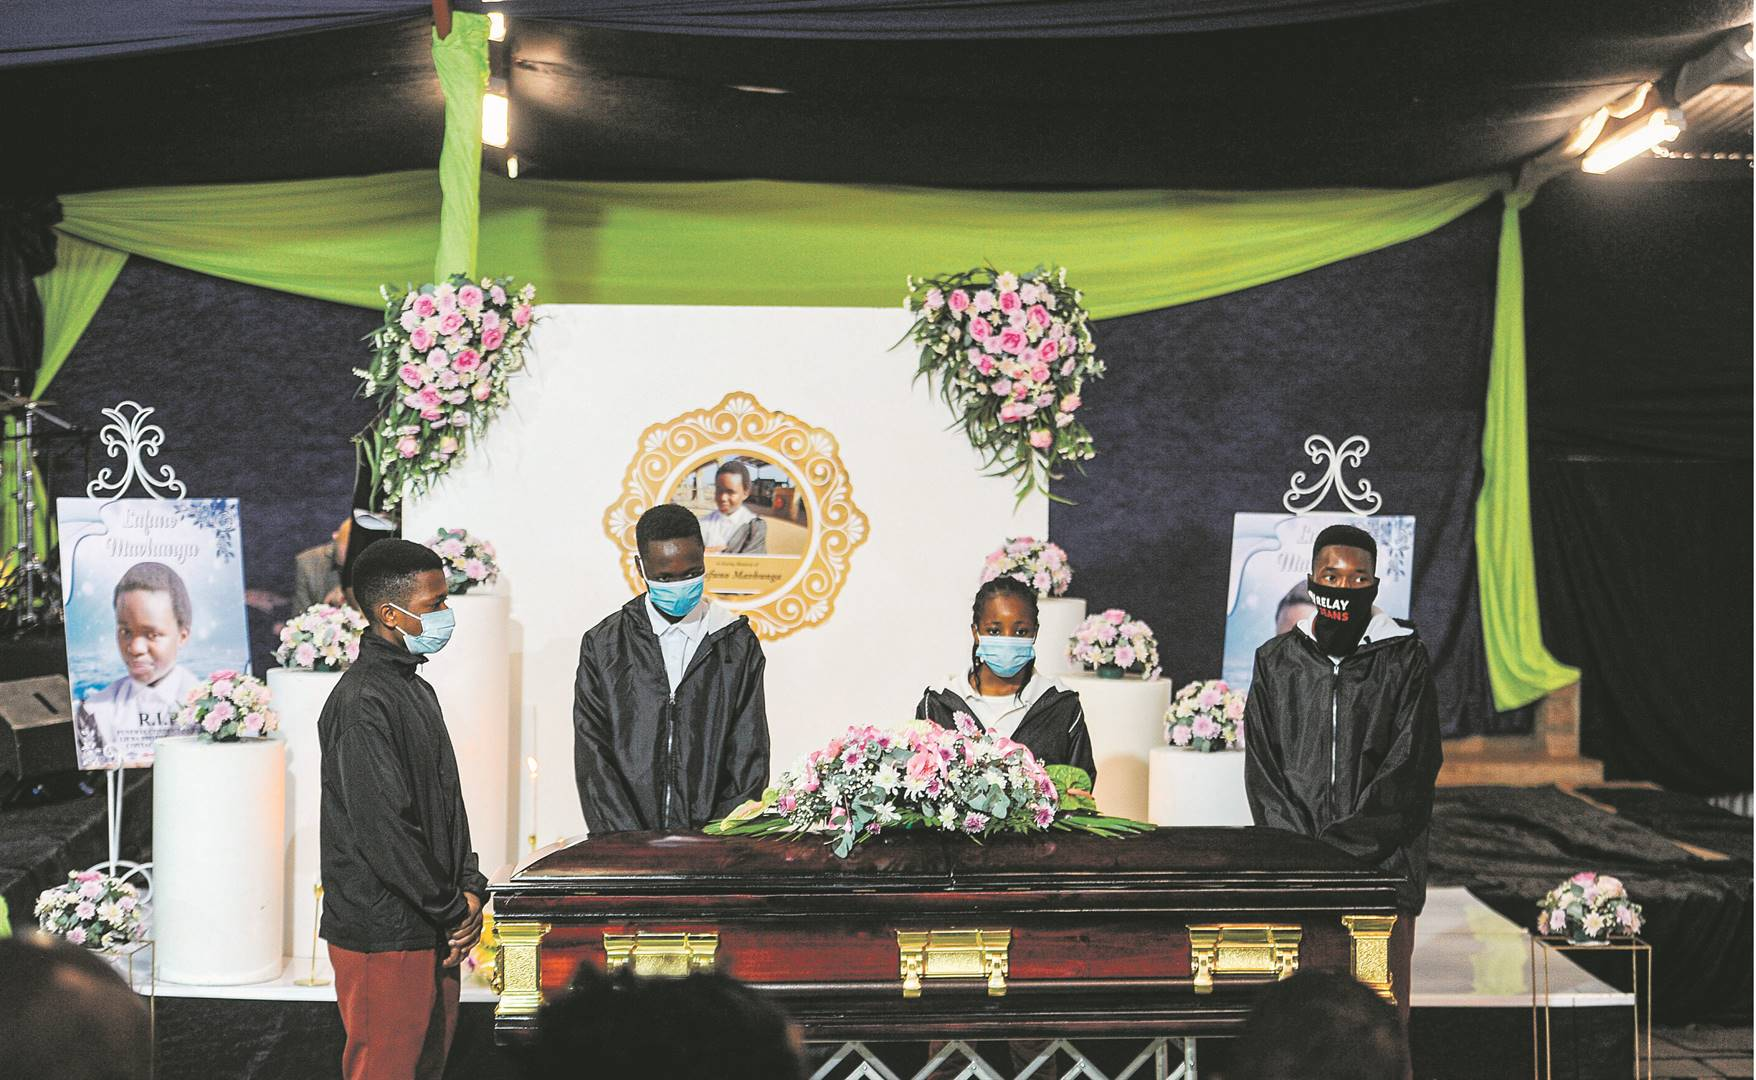 Pupils from Mbilwi Secondary School paid their last respects to Lufuno Mavhunga, who committed suicide on Monday after allegedly being bullied at school. A video of her assault went viral on social media. Picture: Rosetta Msimango